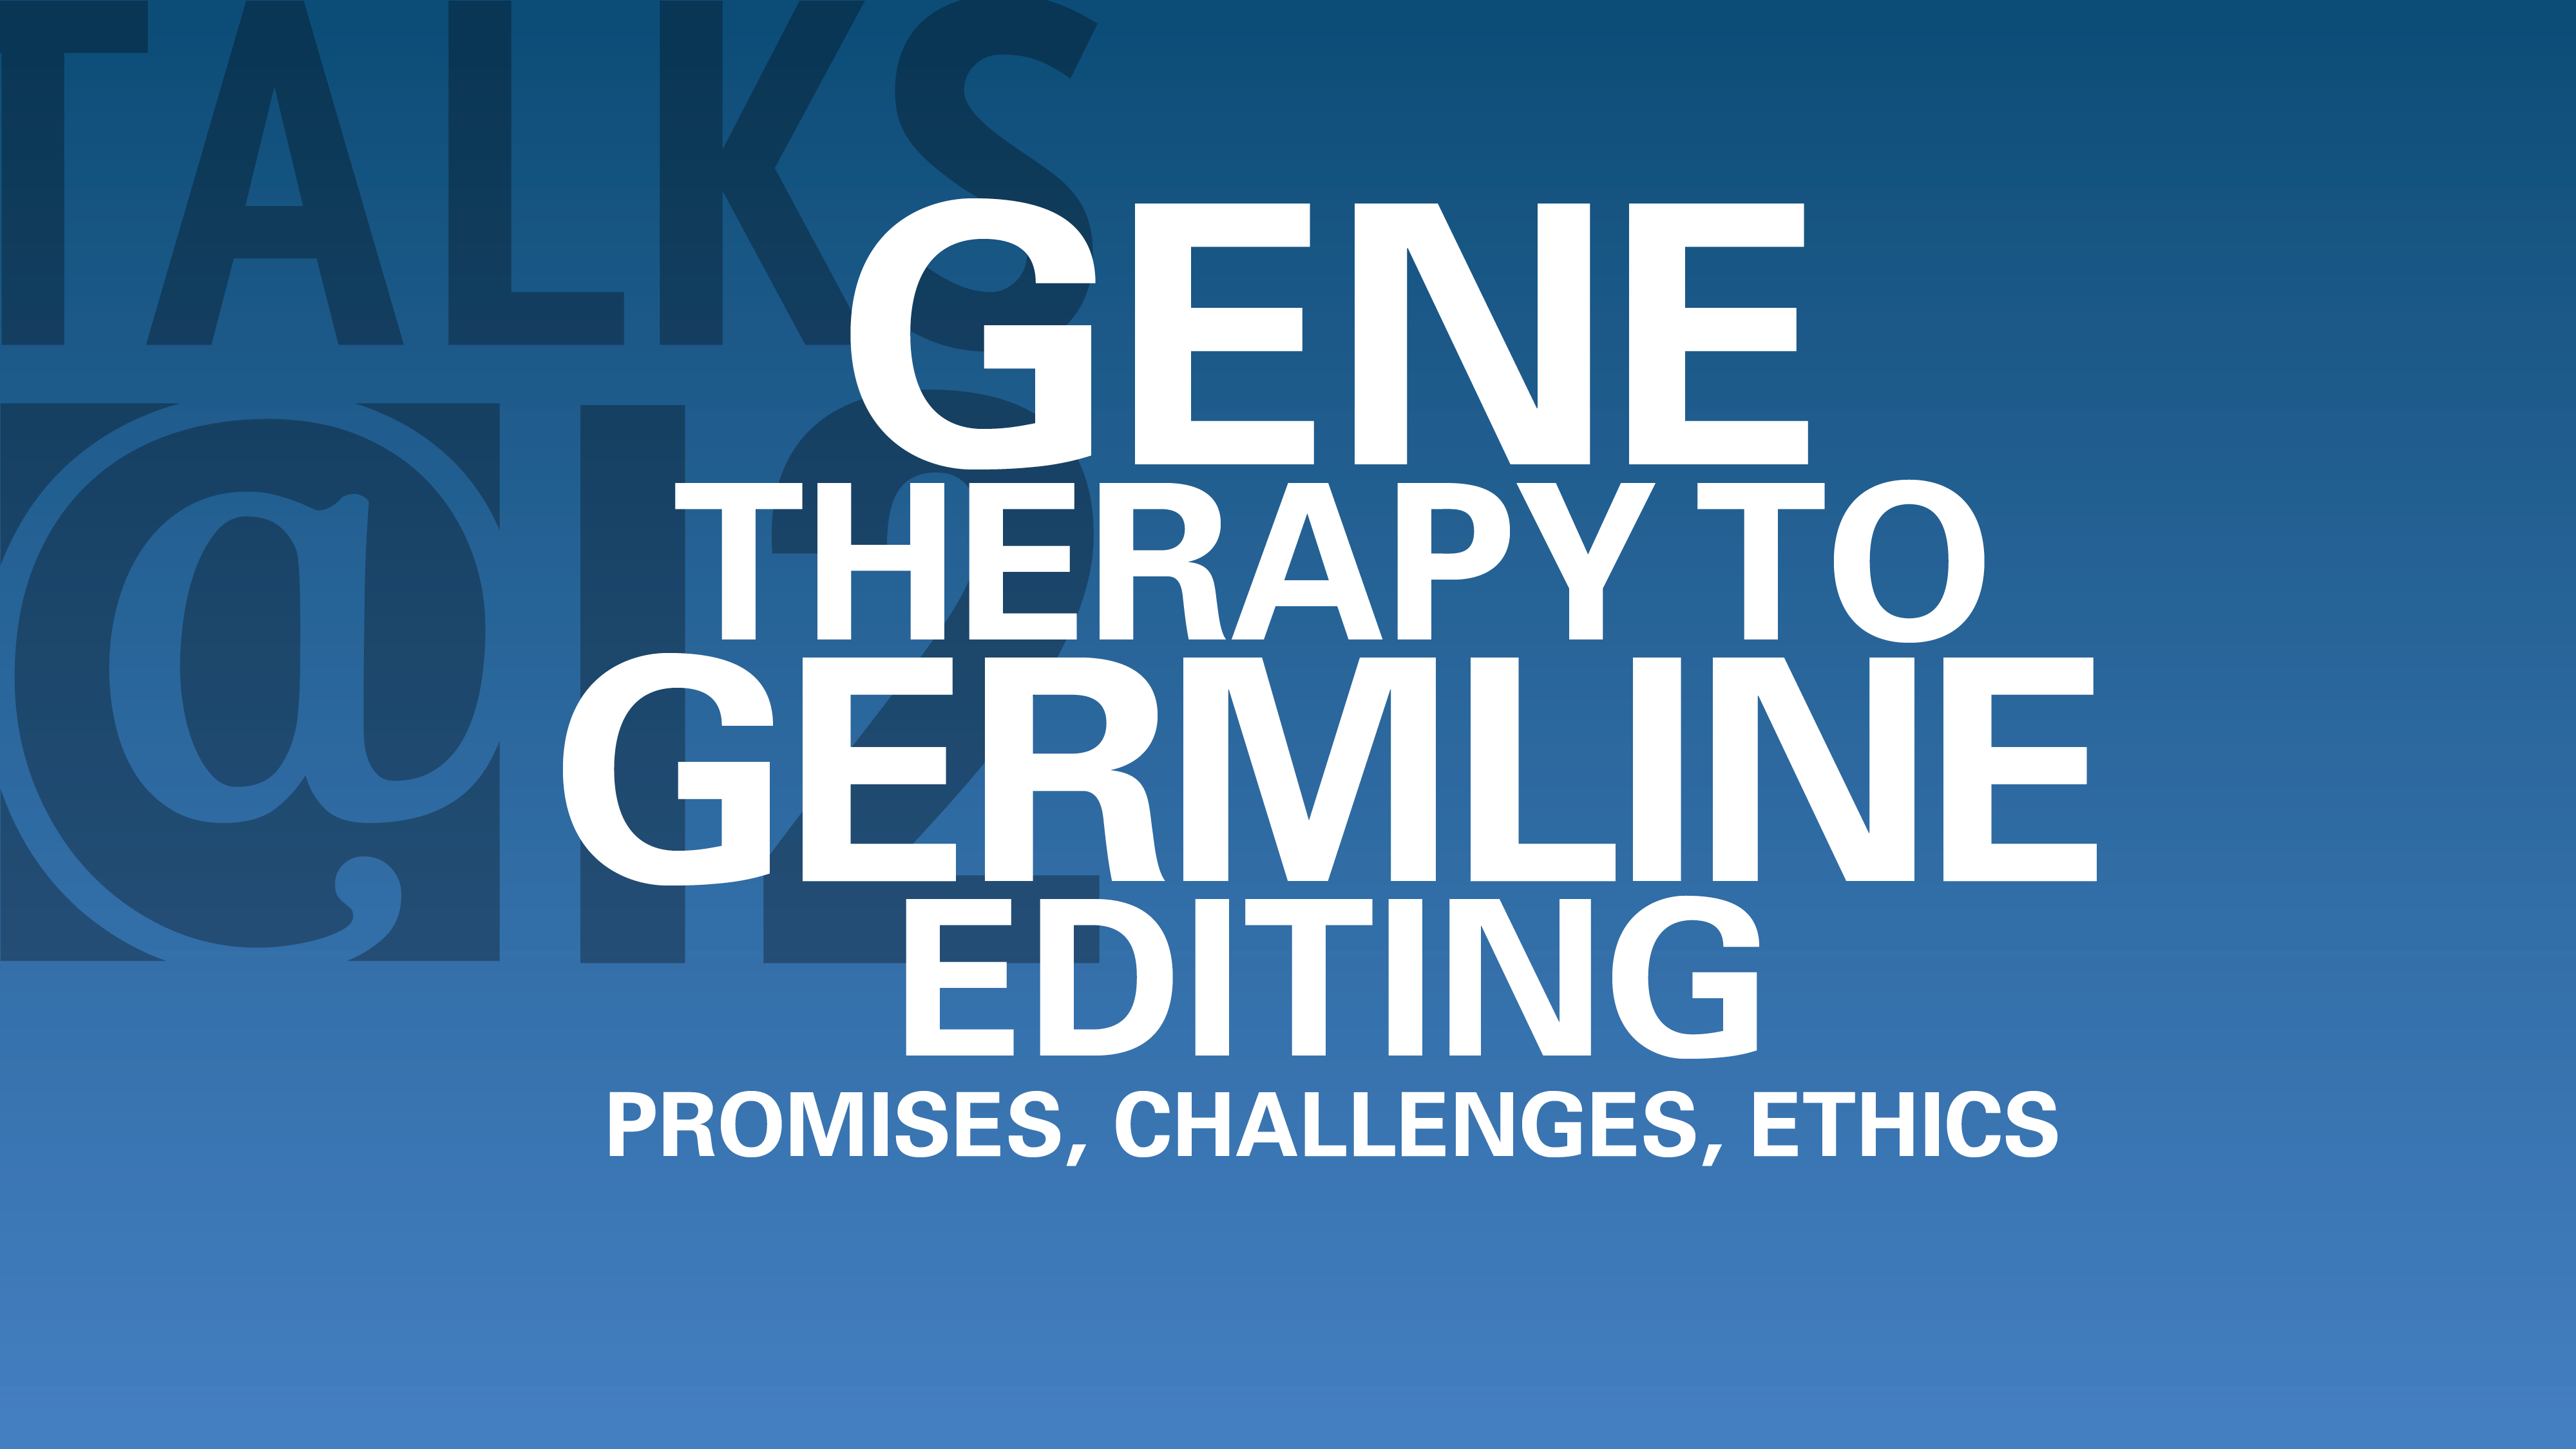 Gene Therapy to Germline Editing: Promises, challenges, ethics